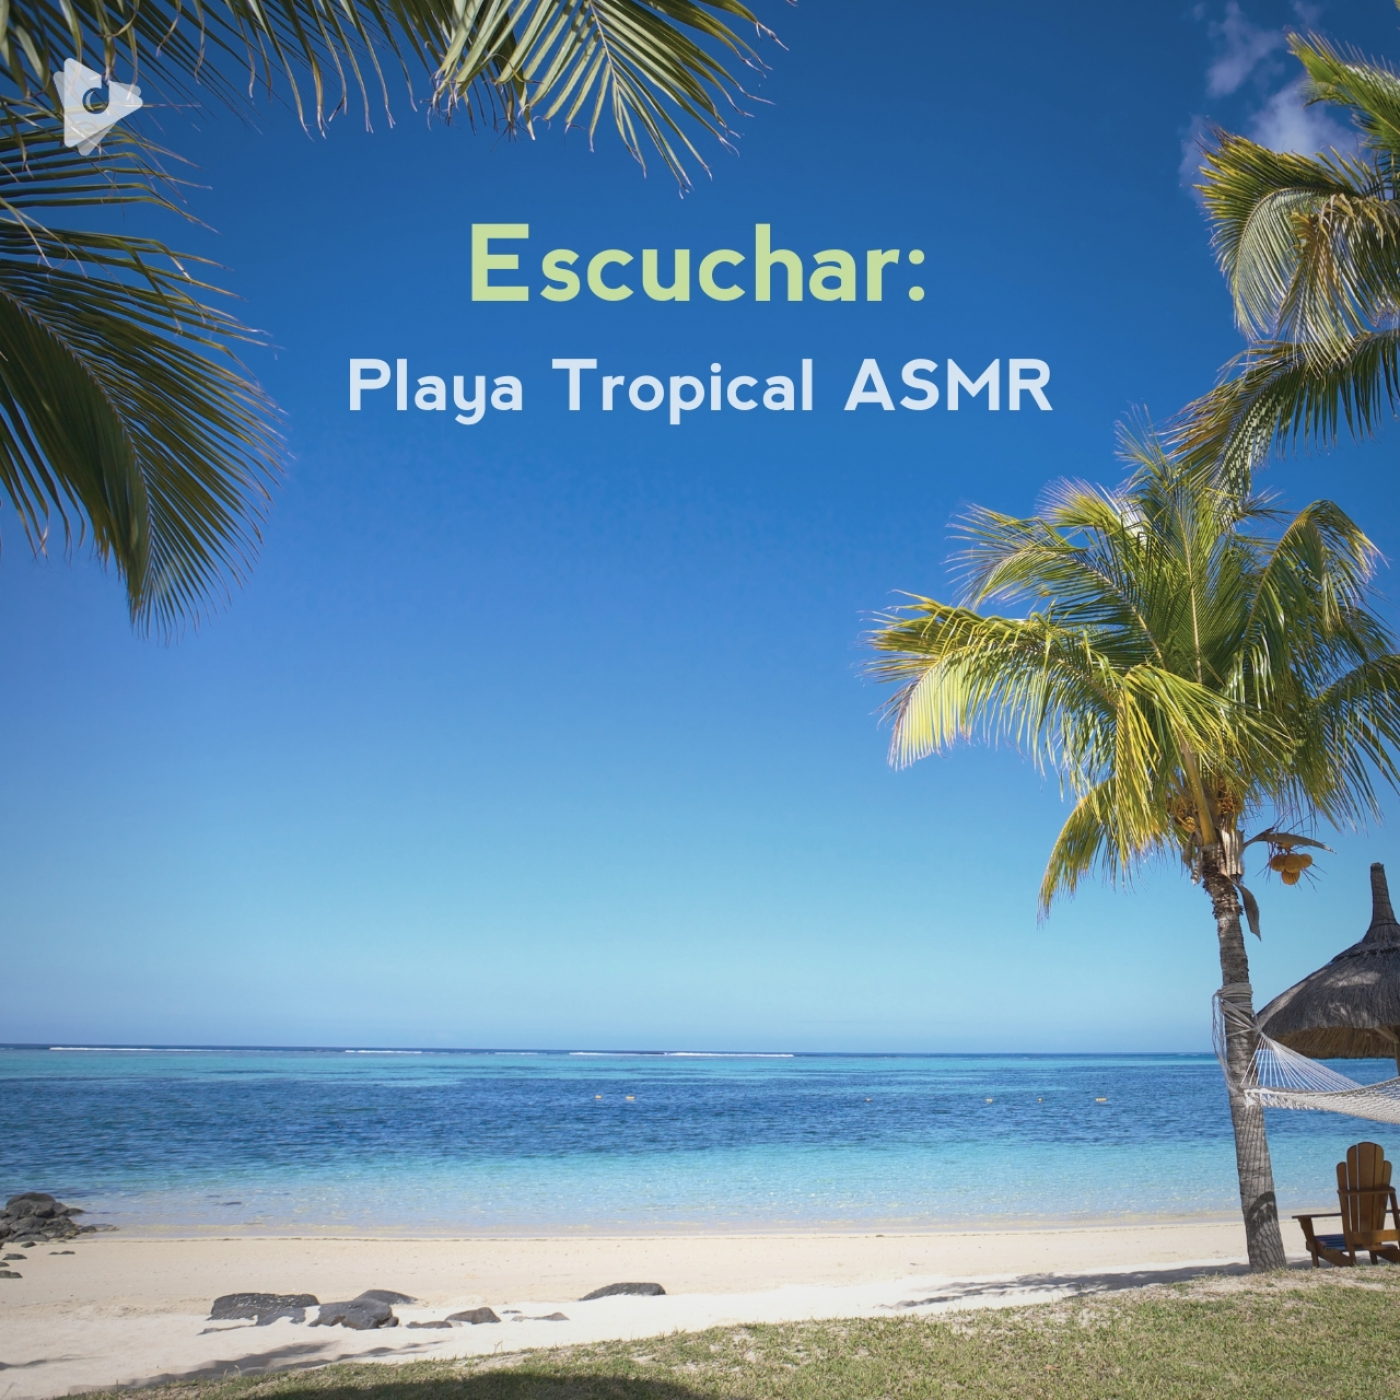 Escuchar: Playa Tropical ASMR